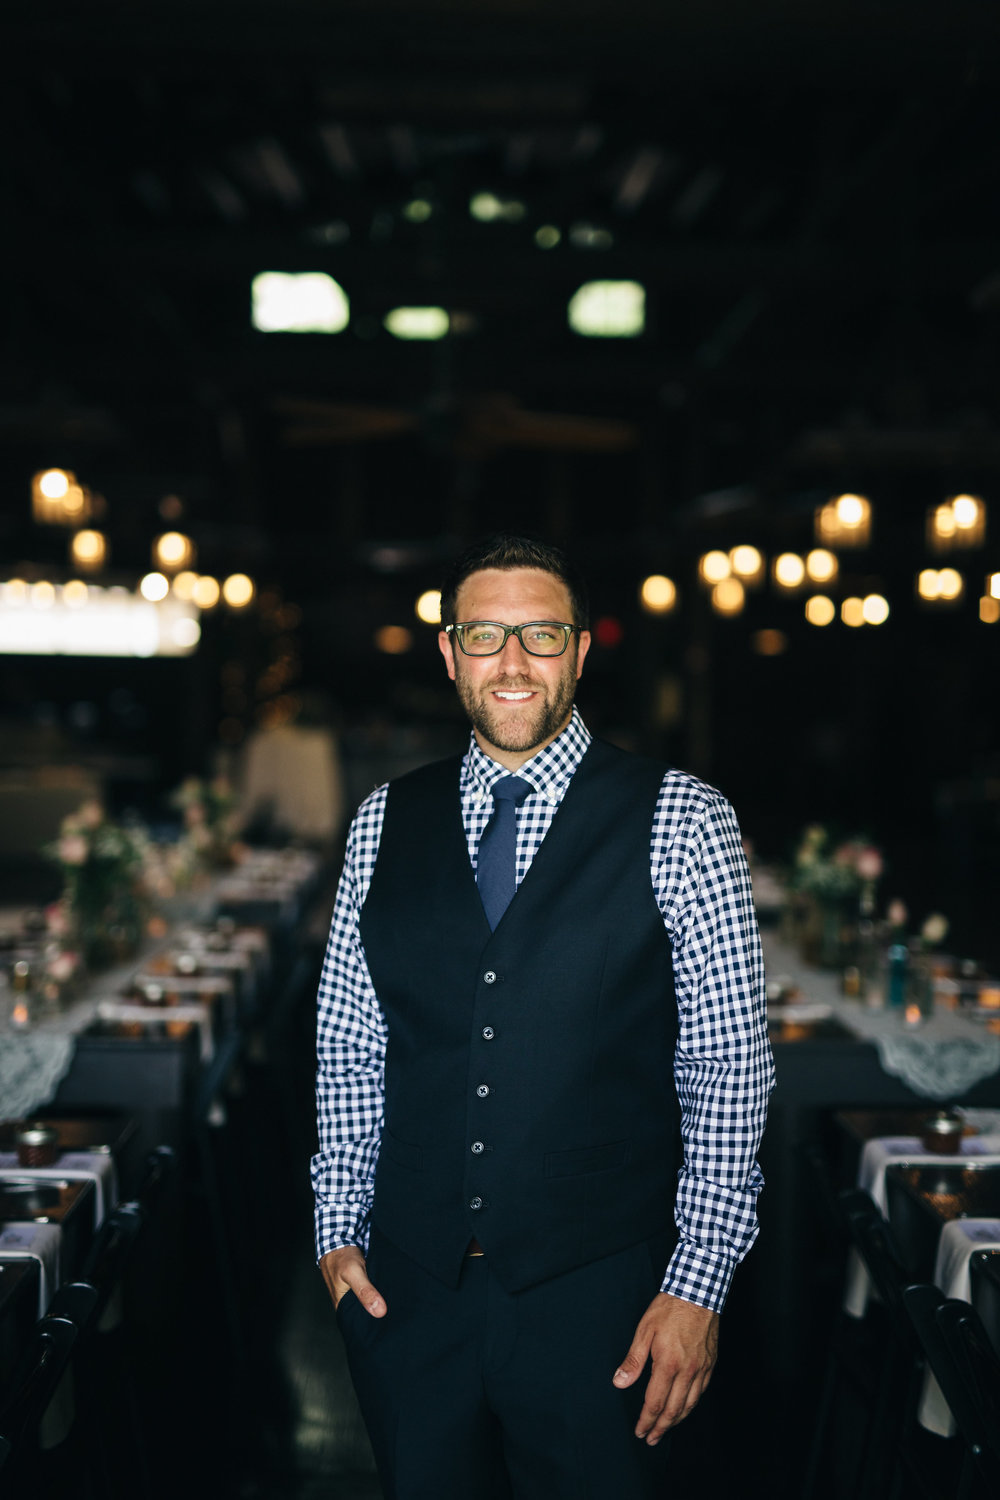 Groom in navy checkered suit in Canton, Ohio Wedding.